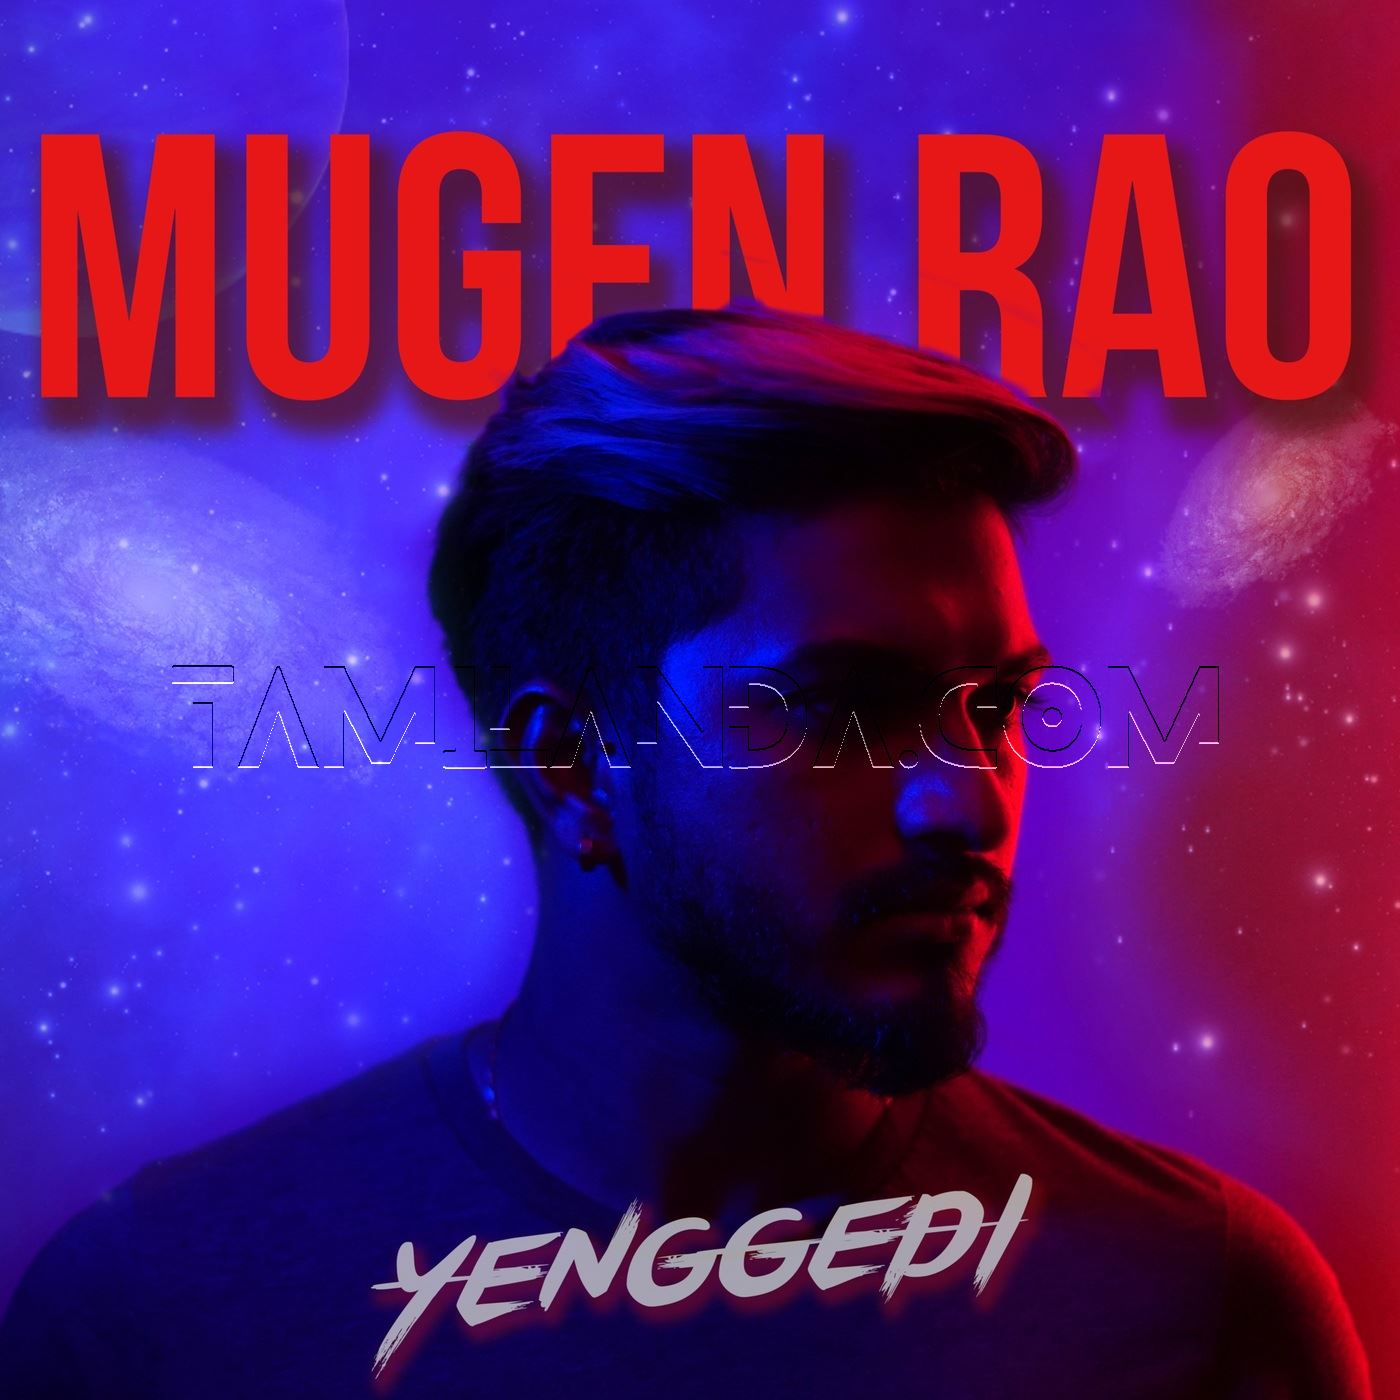 Yenggedi – Single FLAC Song